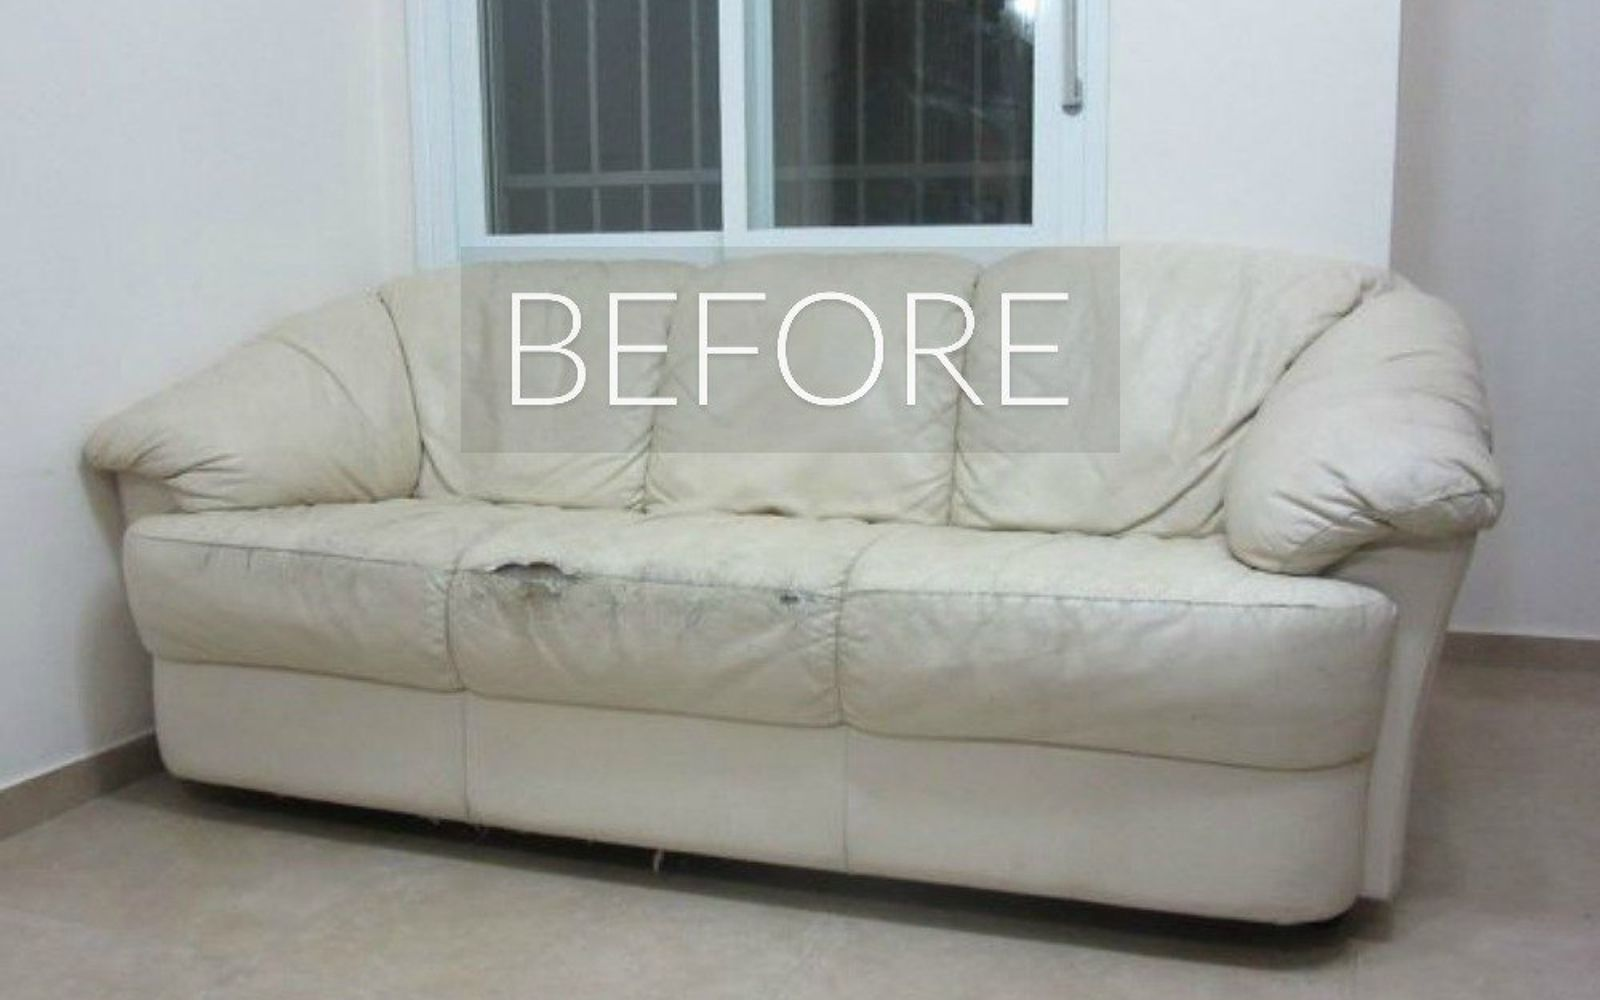 s hide your couch s wear and tear with these 9 ingenious ideas, painted furniture, Before Torn and worn